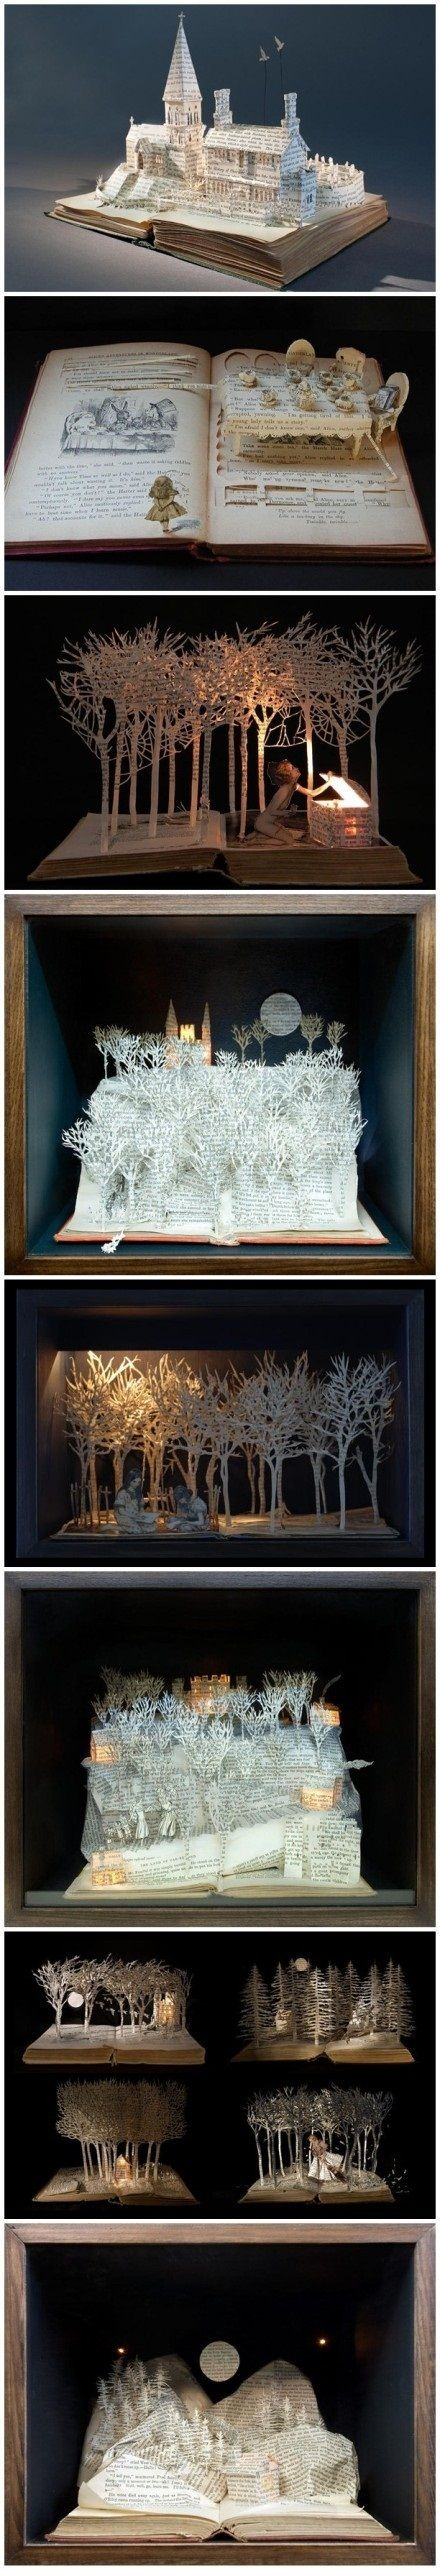 Book Art by Su Blackwell http://www.sublackwell.co.uk/